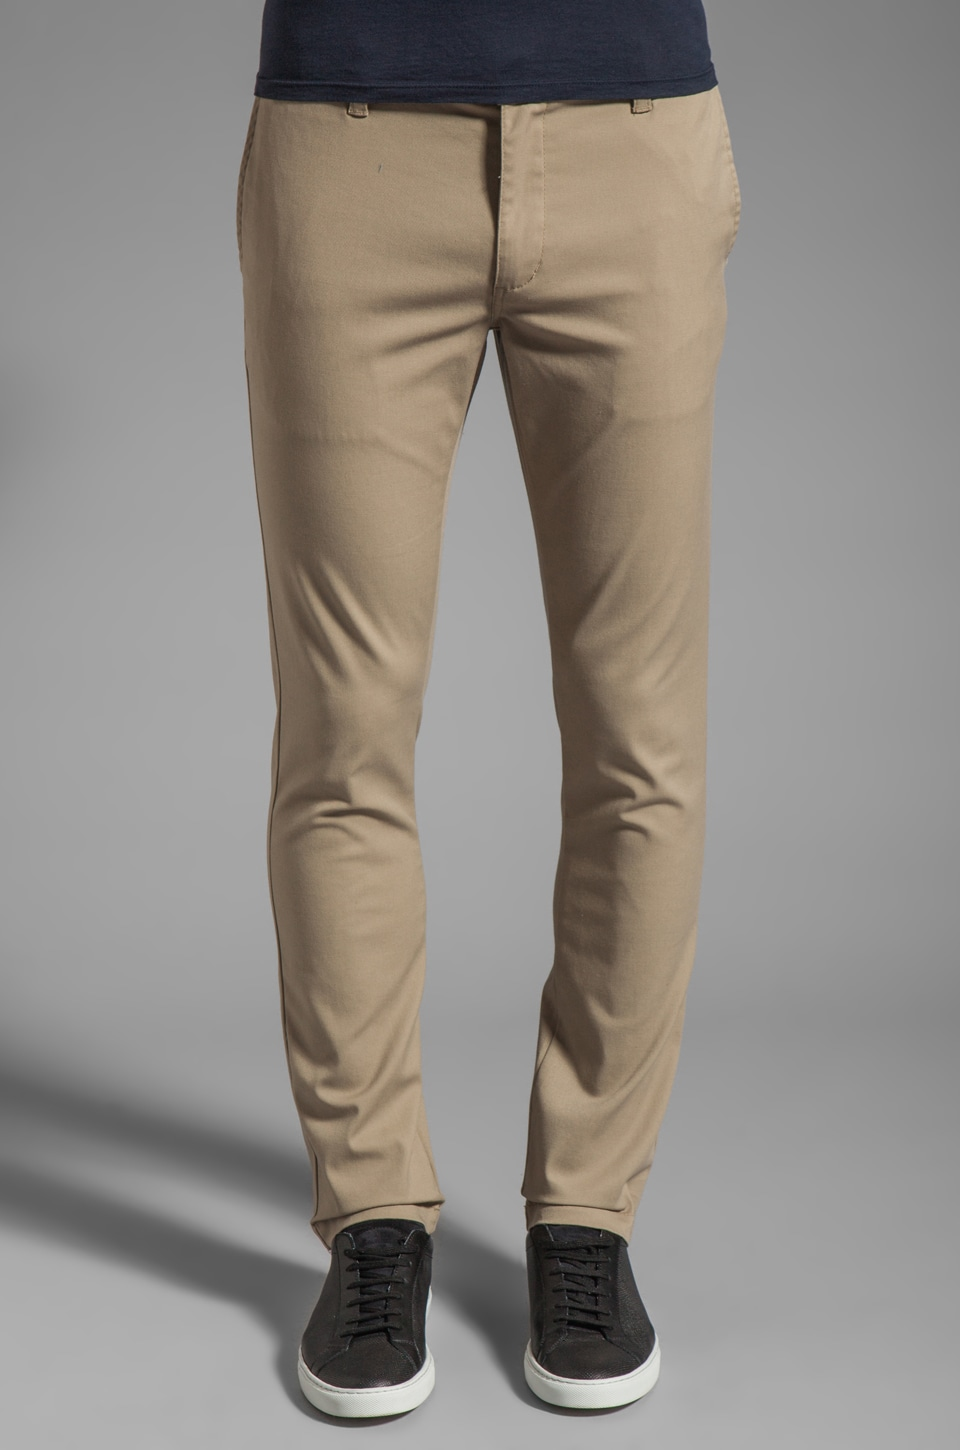 RVCA Stapler Chino in Khaki